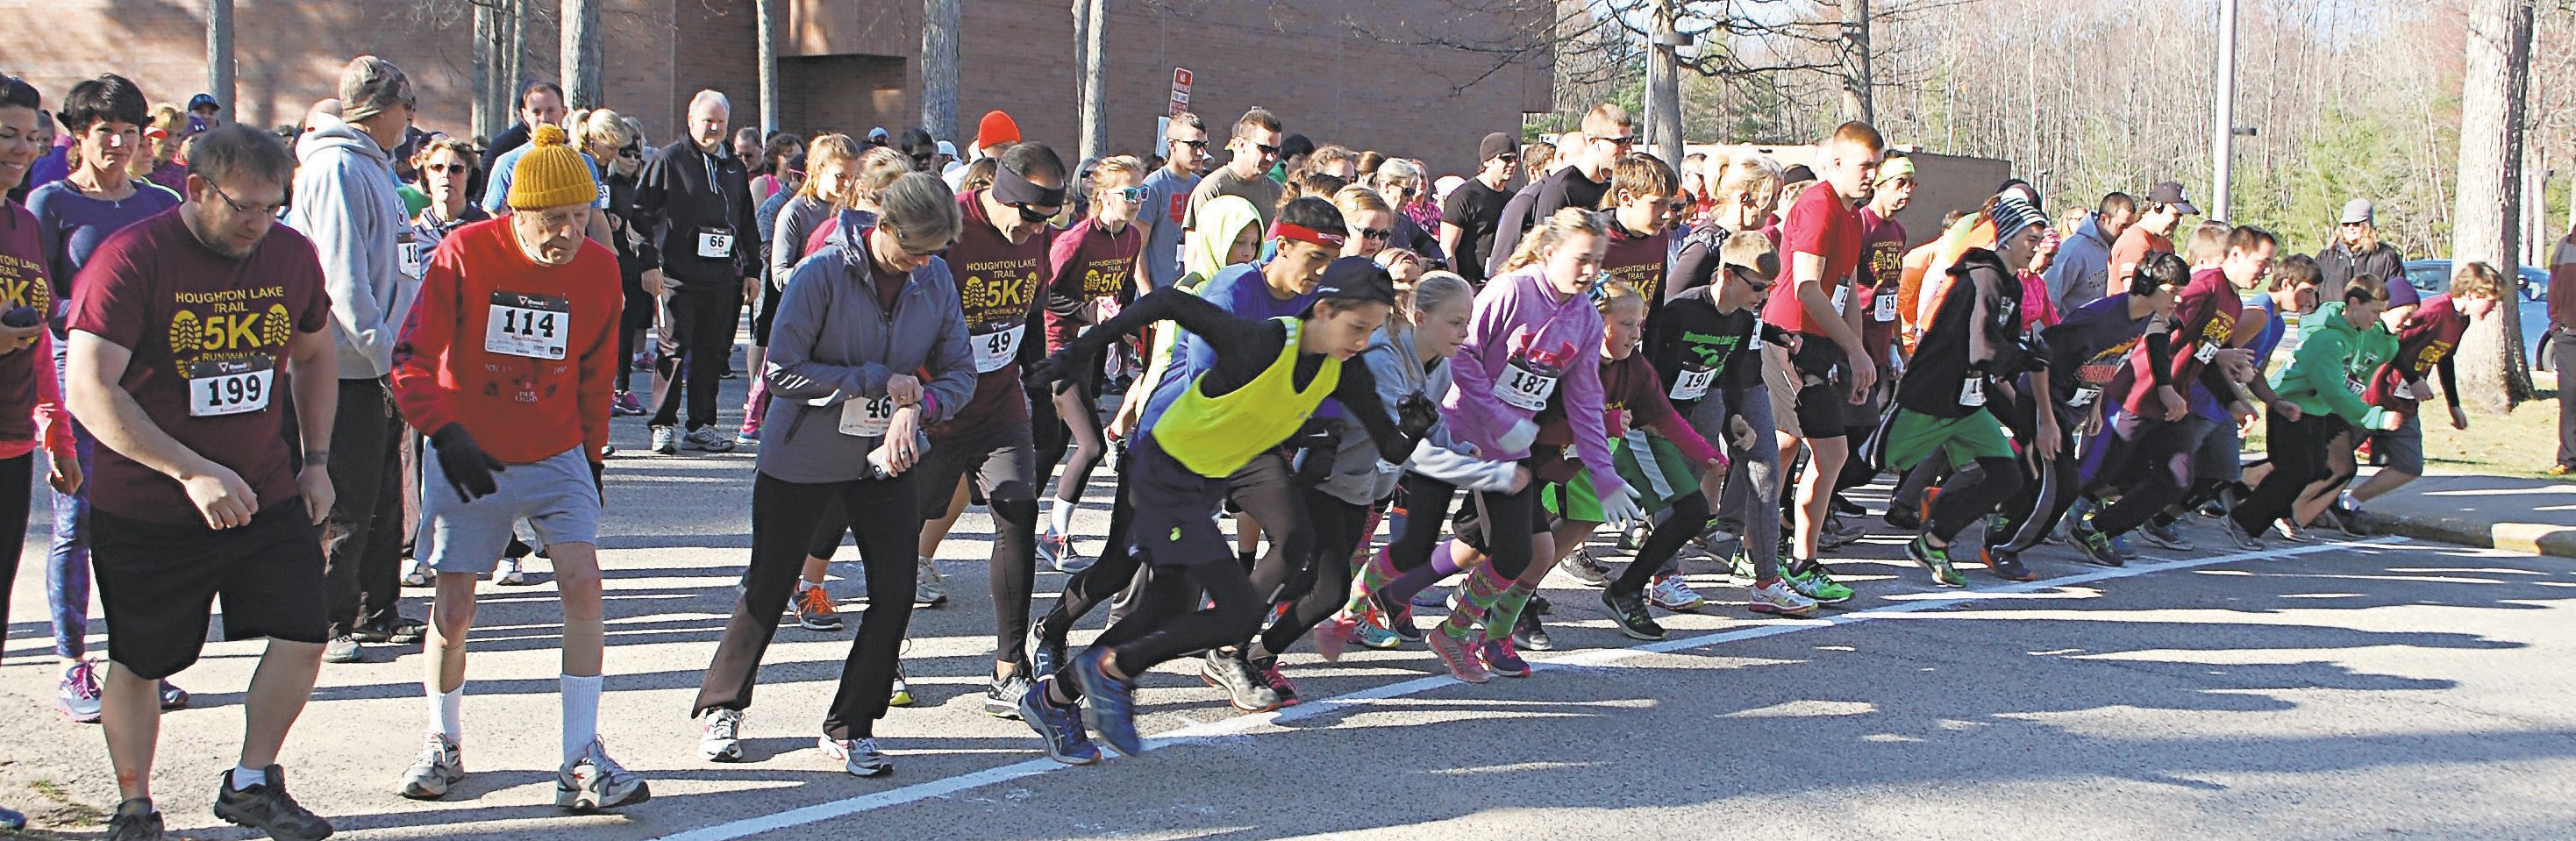 Houghton Lake 5K attracts more than 200 participants